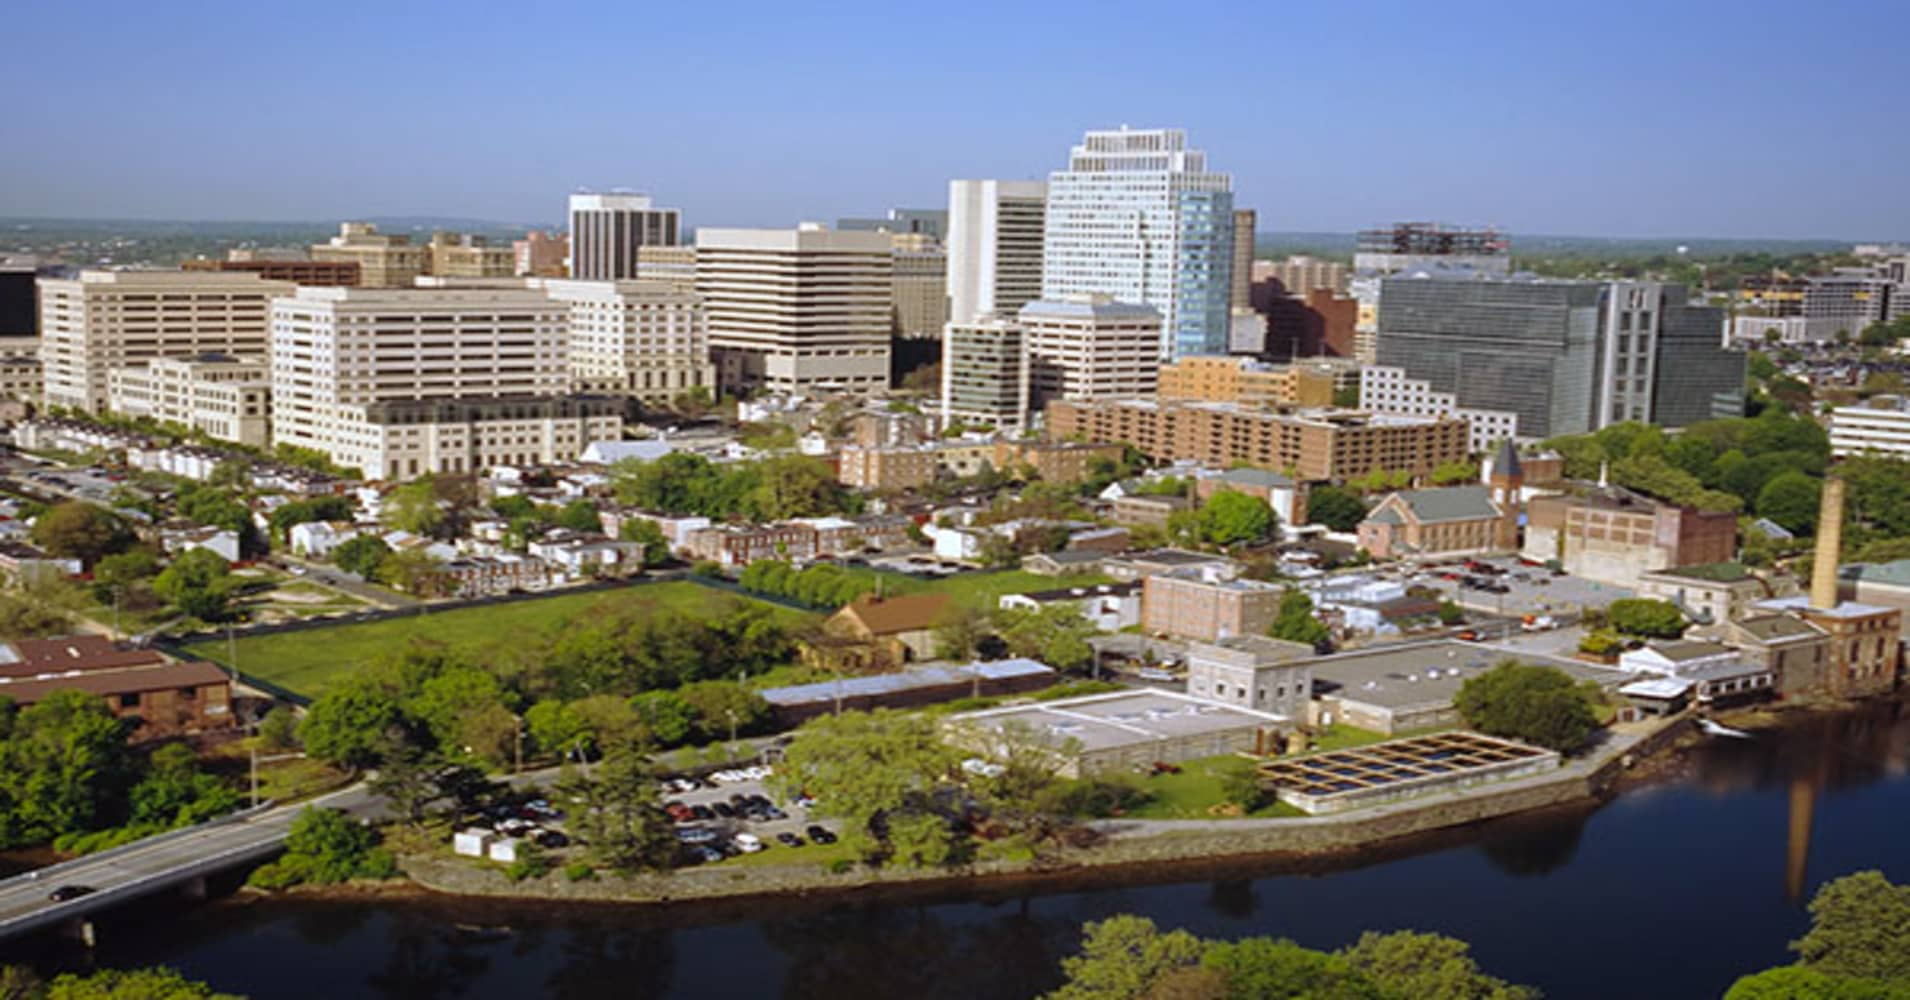 On April 13, Delaware Gov. Jack Markell and Delaware Economic Development Office Director Alan Levin announced an infusion of  into their state. The jobs came courtesy of an expansion plan by JPMorgan Chase, which already had thousands of jobs in Wilmington, the state's largest city.